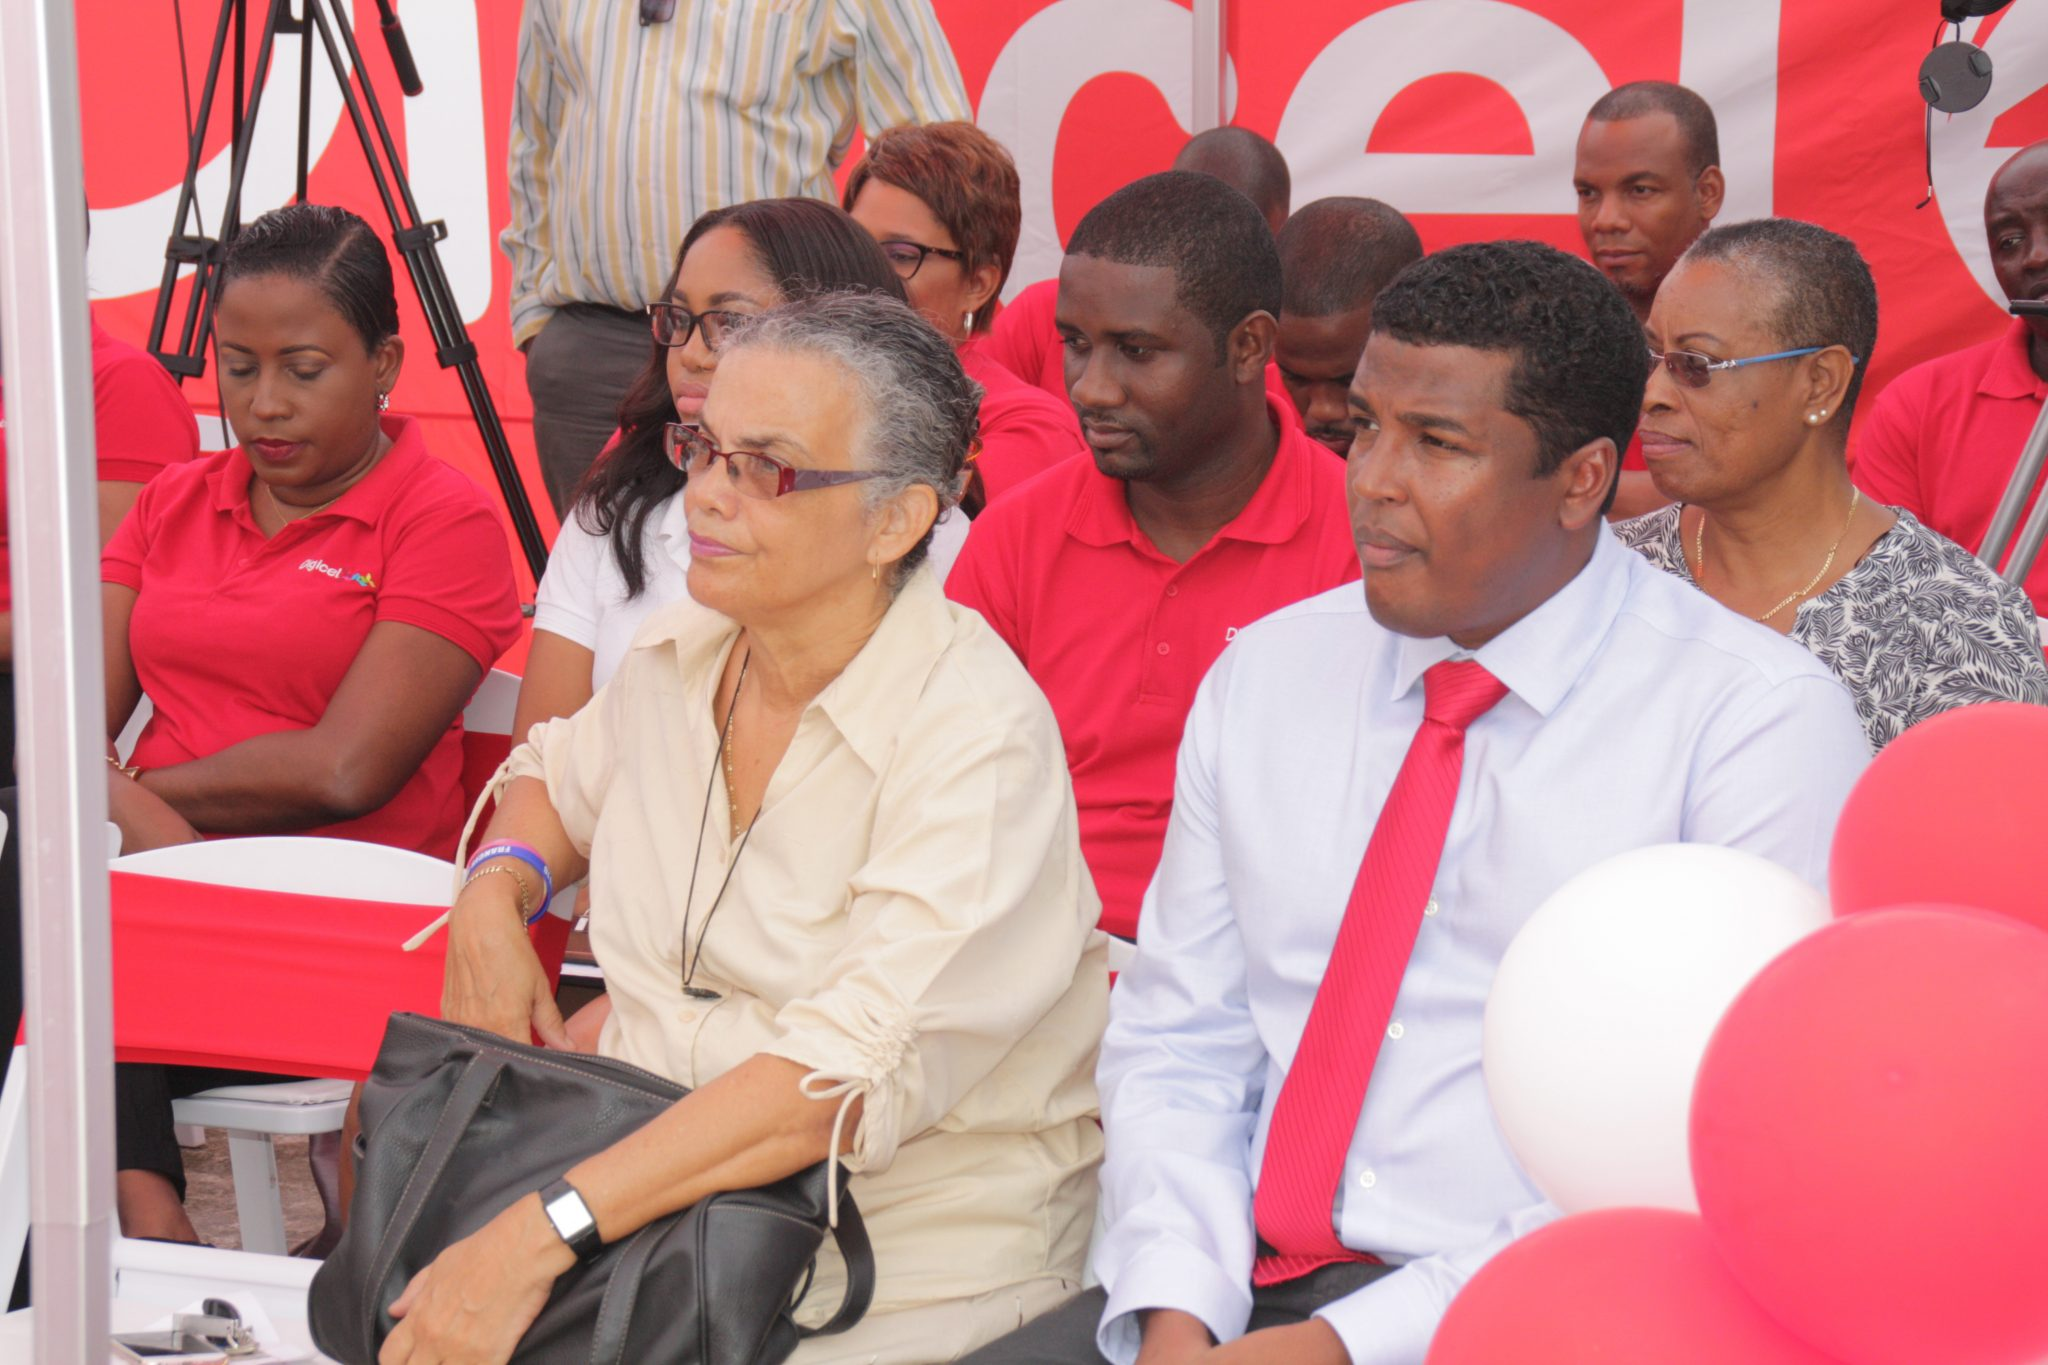 Miriam Sheridan, left, Gidharry and other Digicel staff at Tuesday's unveiling. (INW photo)